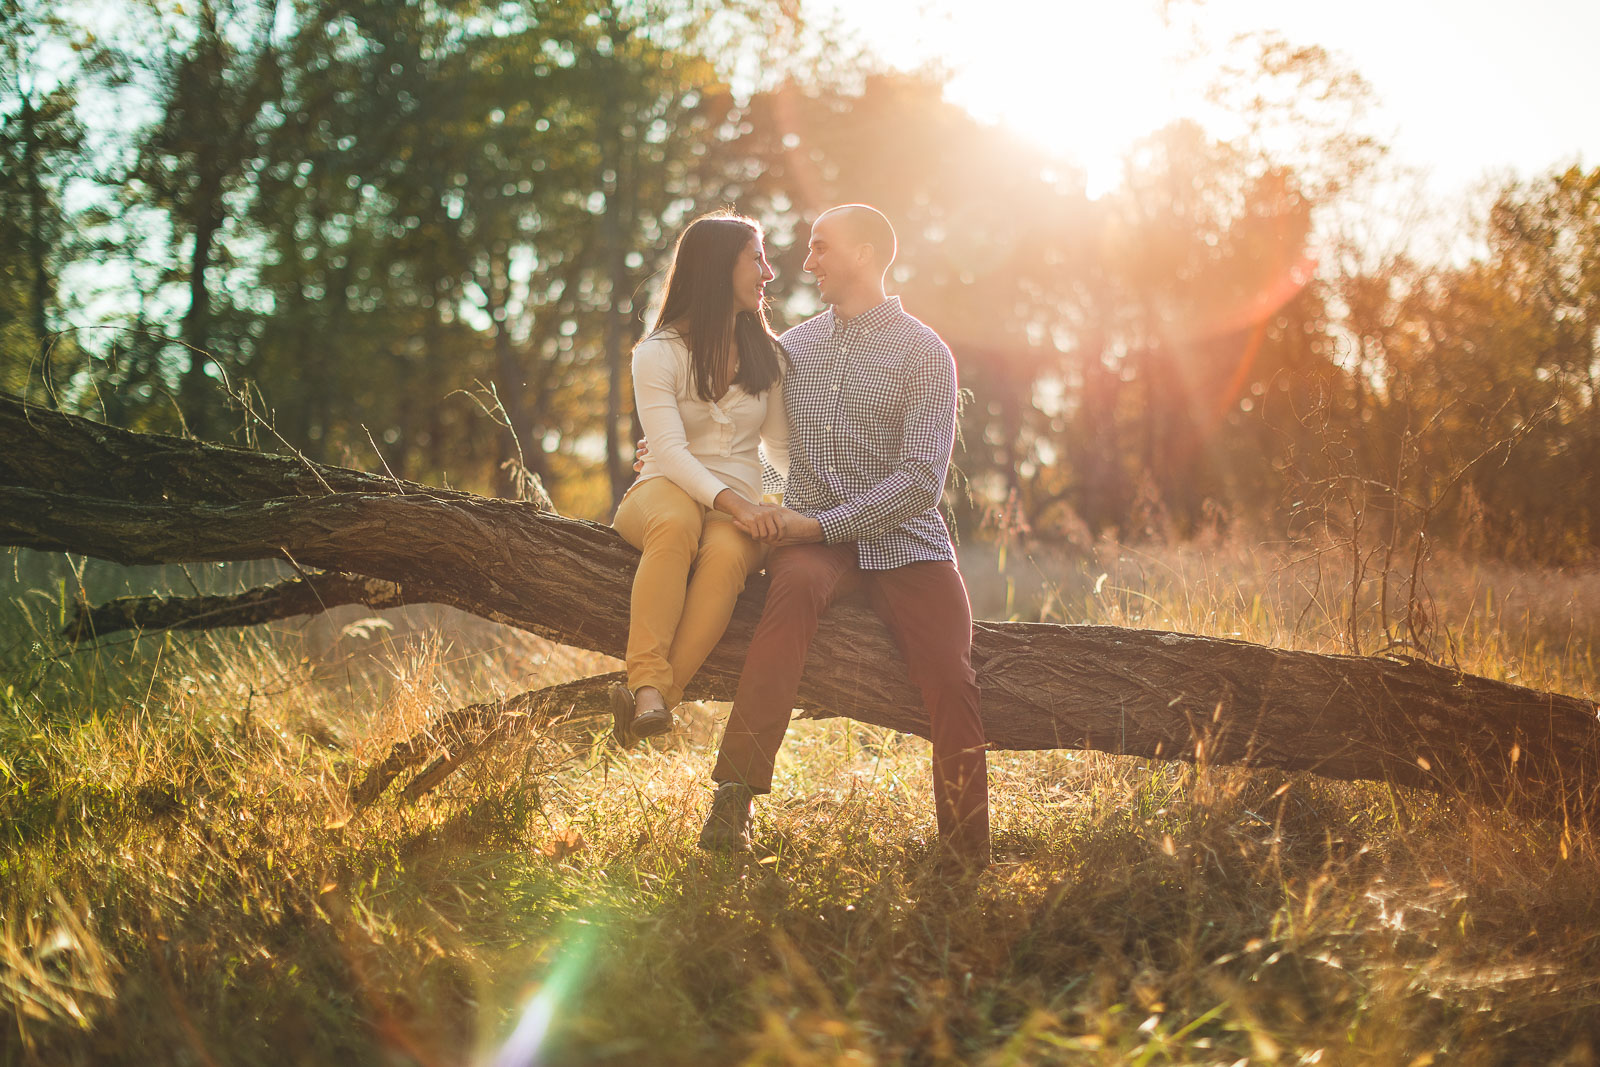 Jockey Hollow Engagement Photos